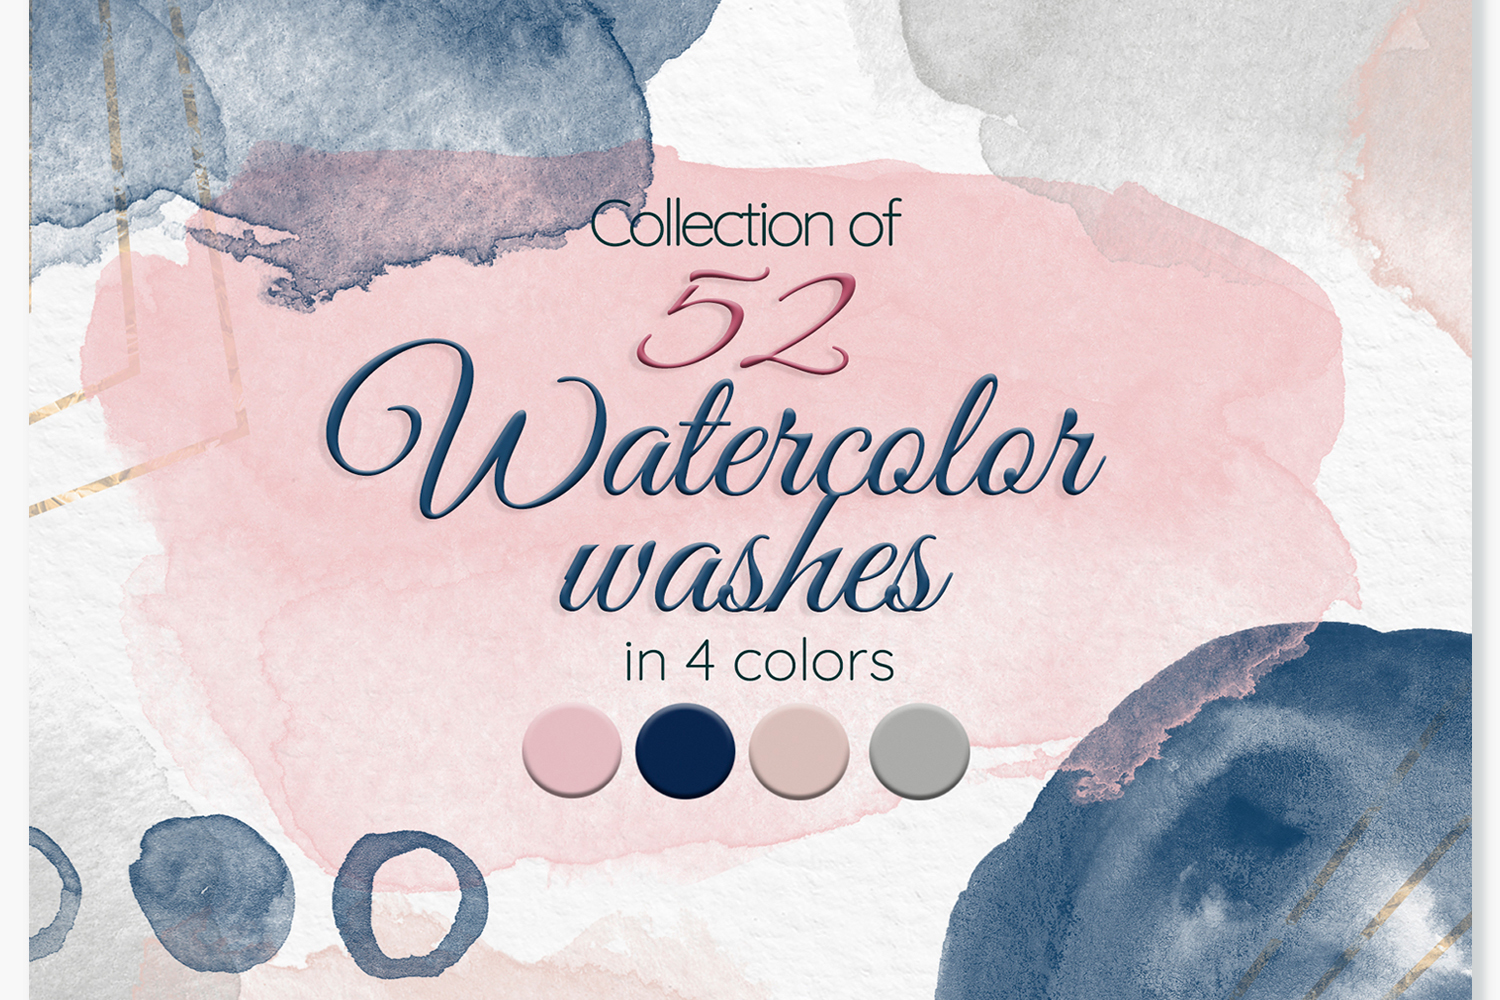 Watercolor stains Blush pink Navy blue Beige Grey washes example image 1